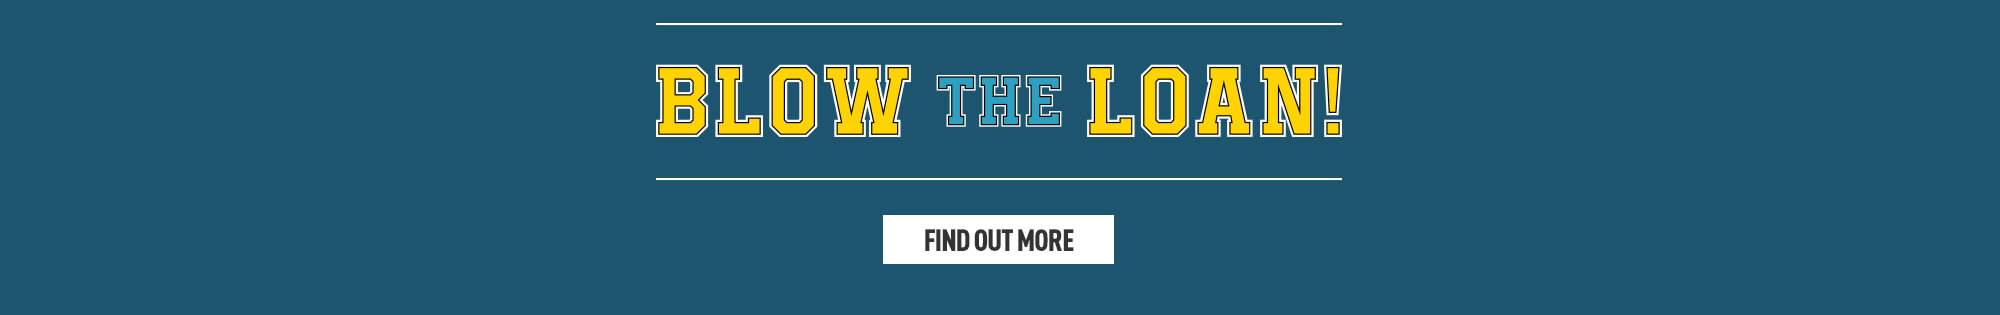 Blow your Loan! - Homepage banner